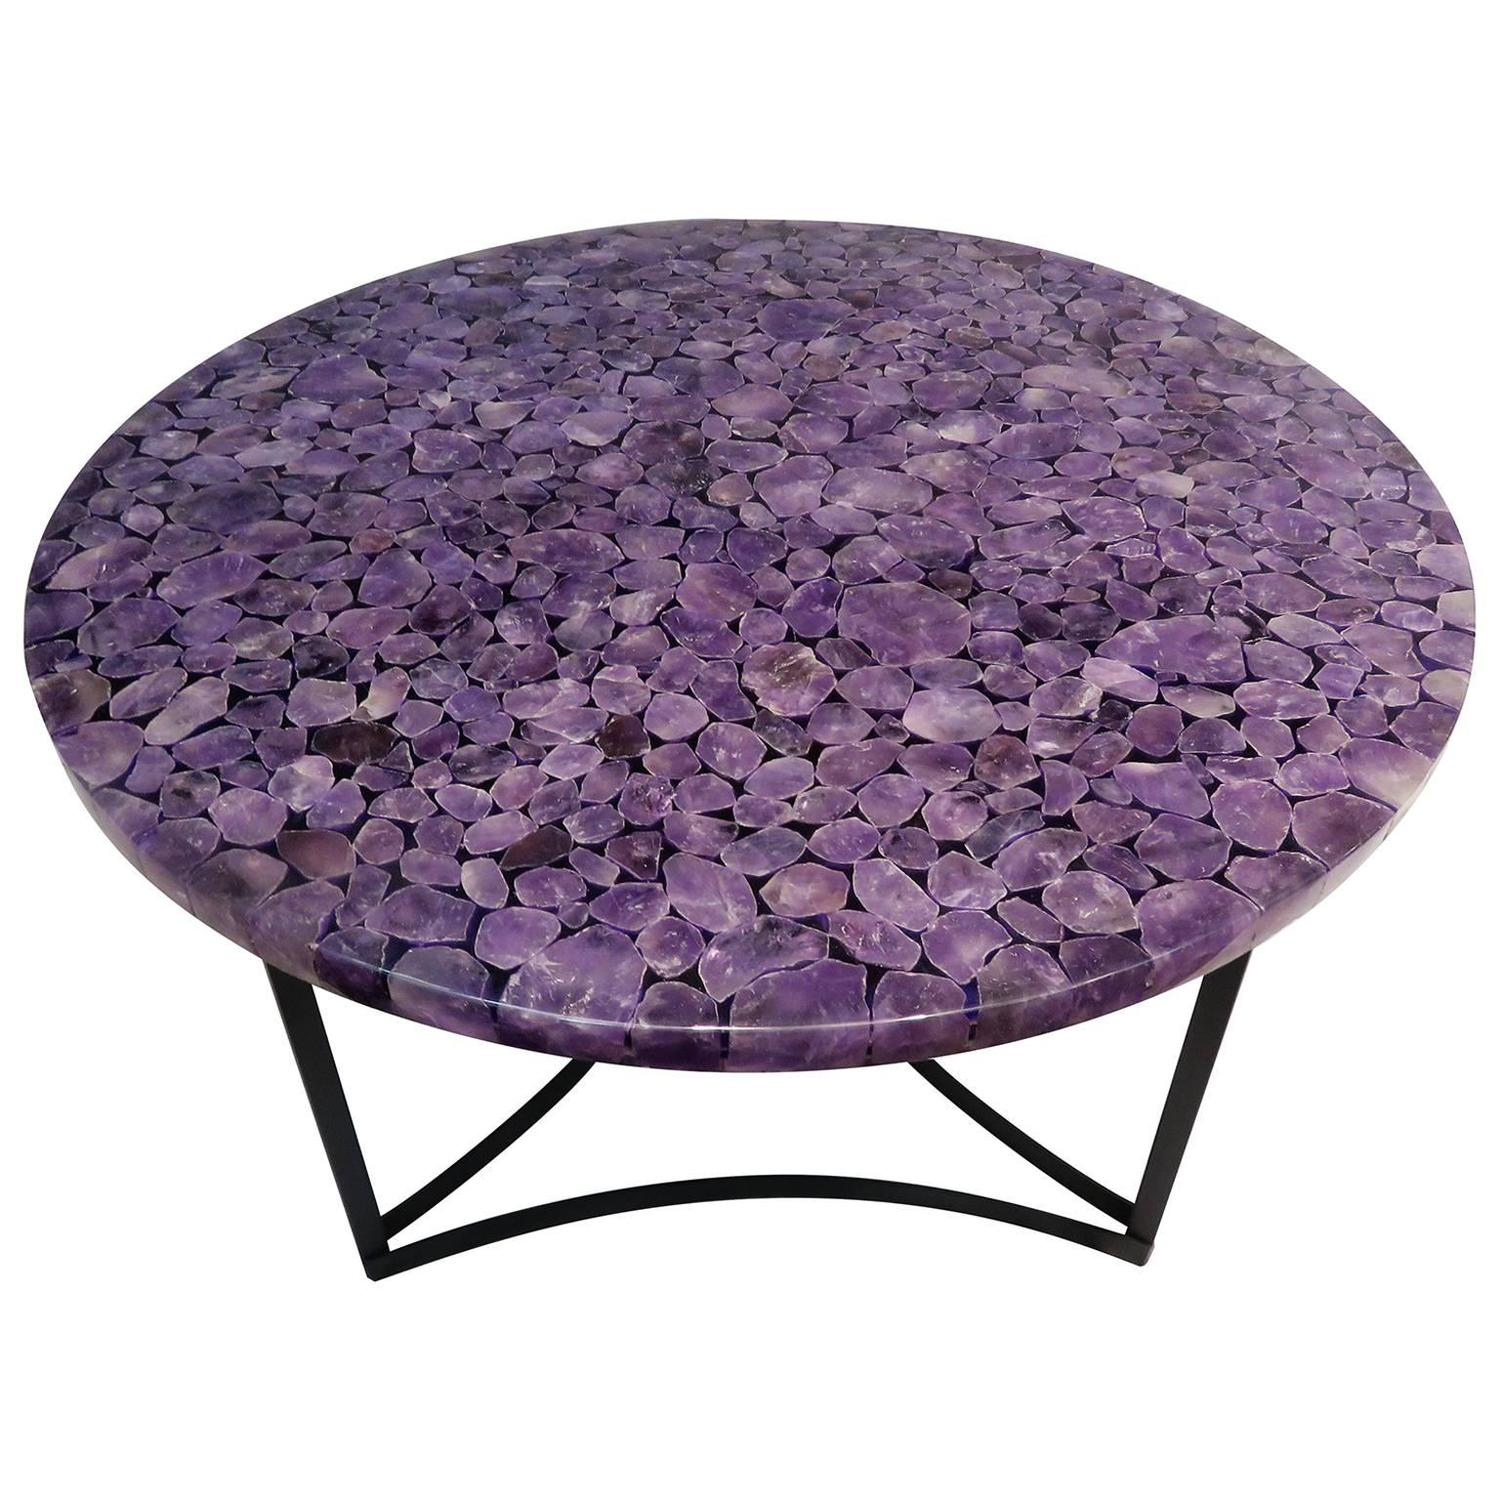 Amethyst Furniture 190 For Sale at 1stdibs